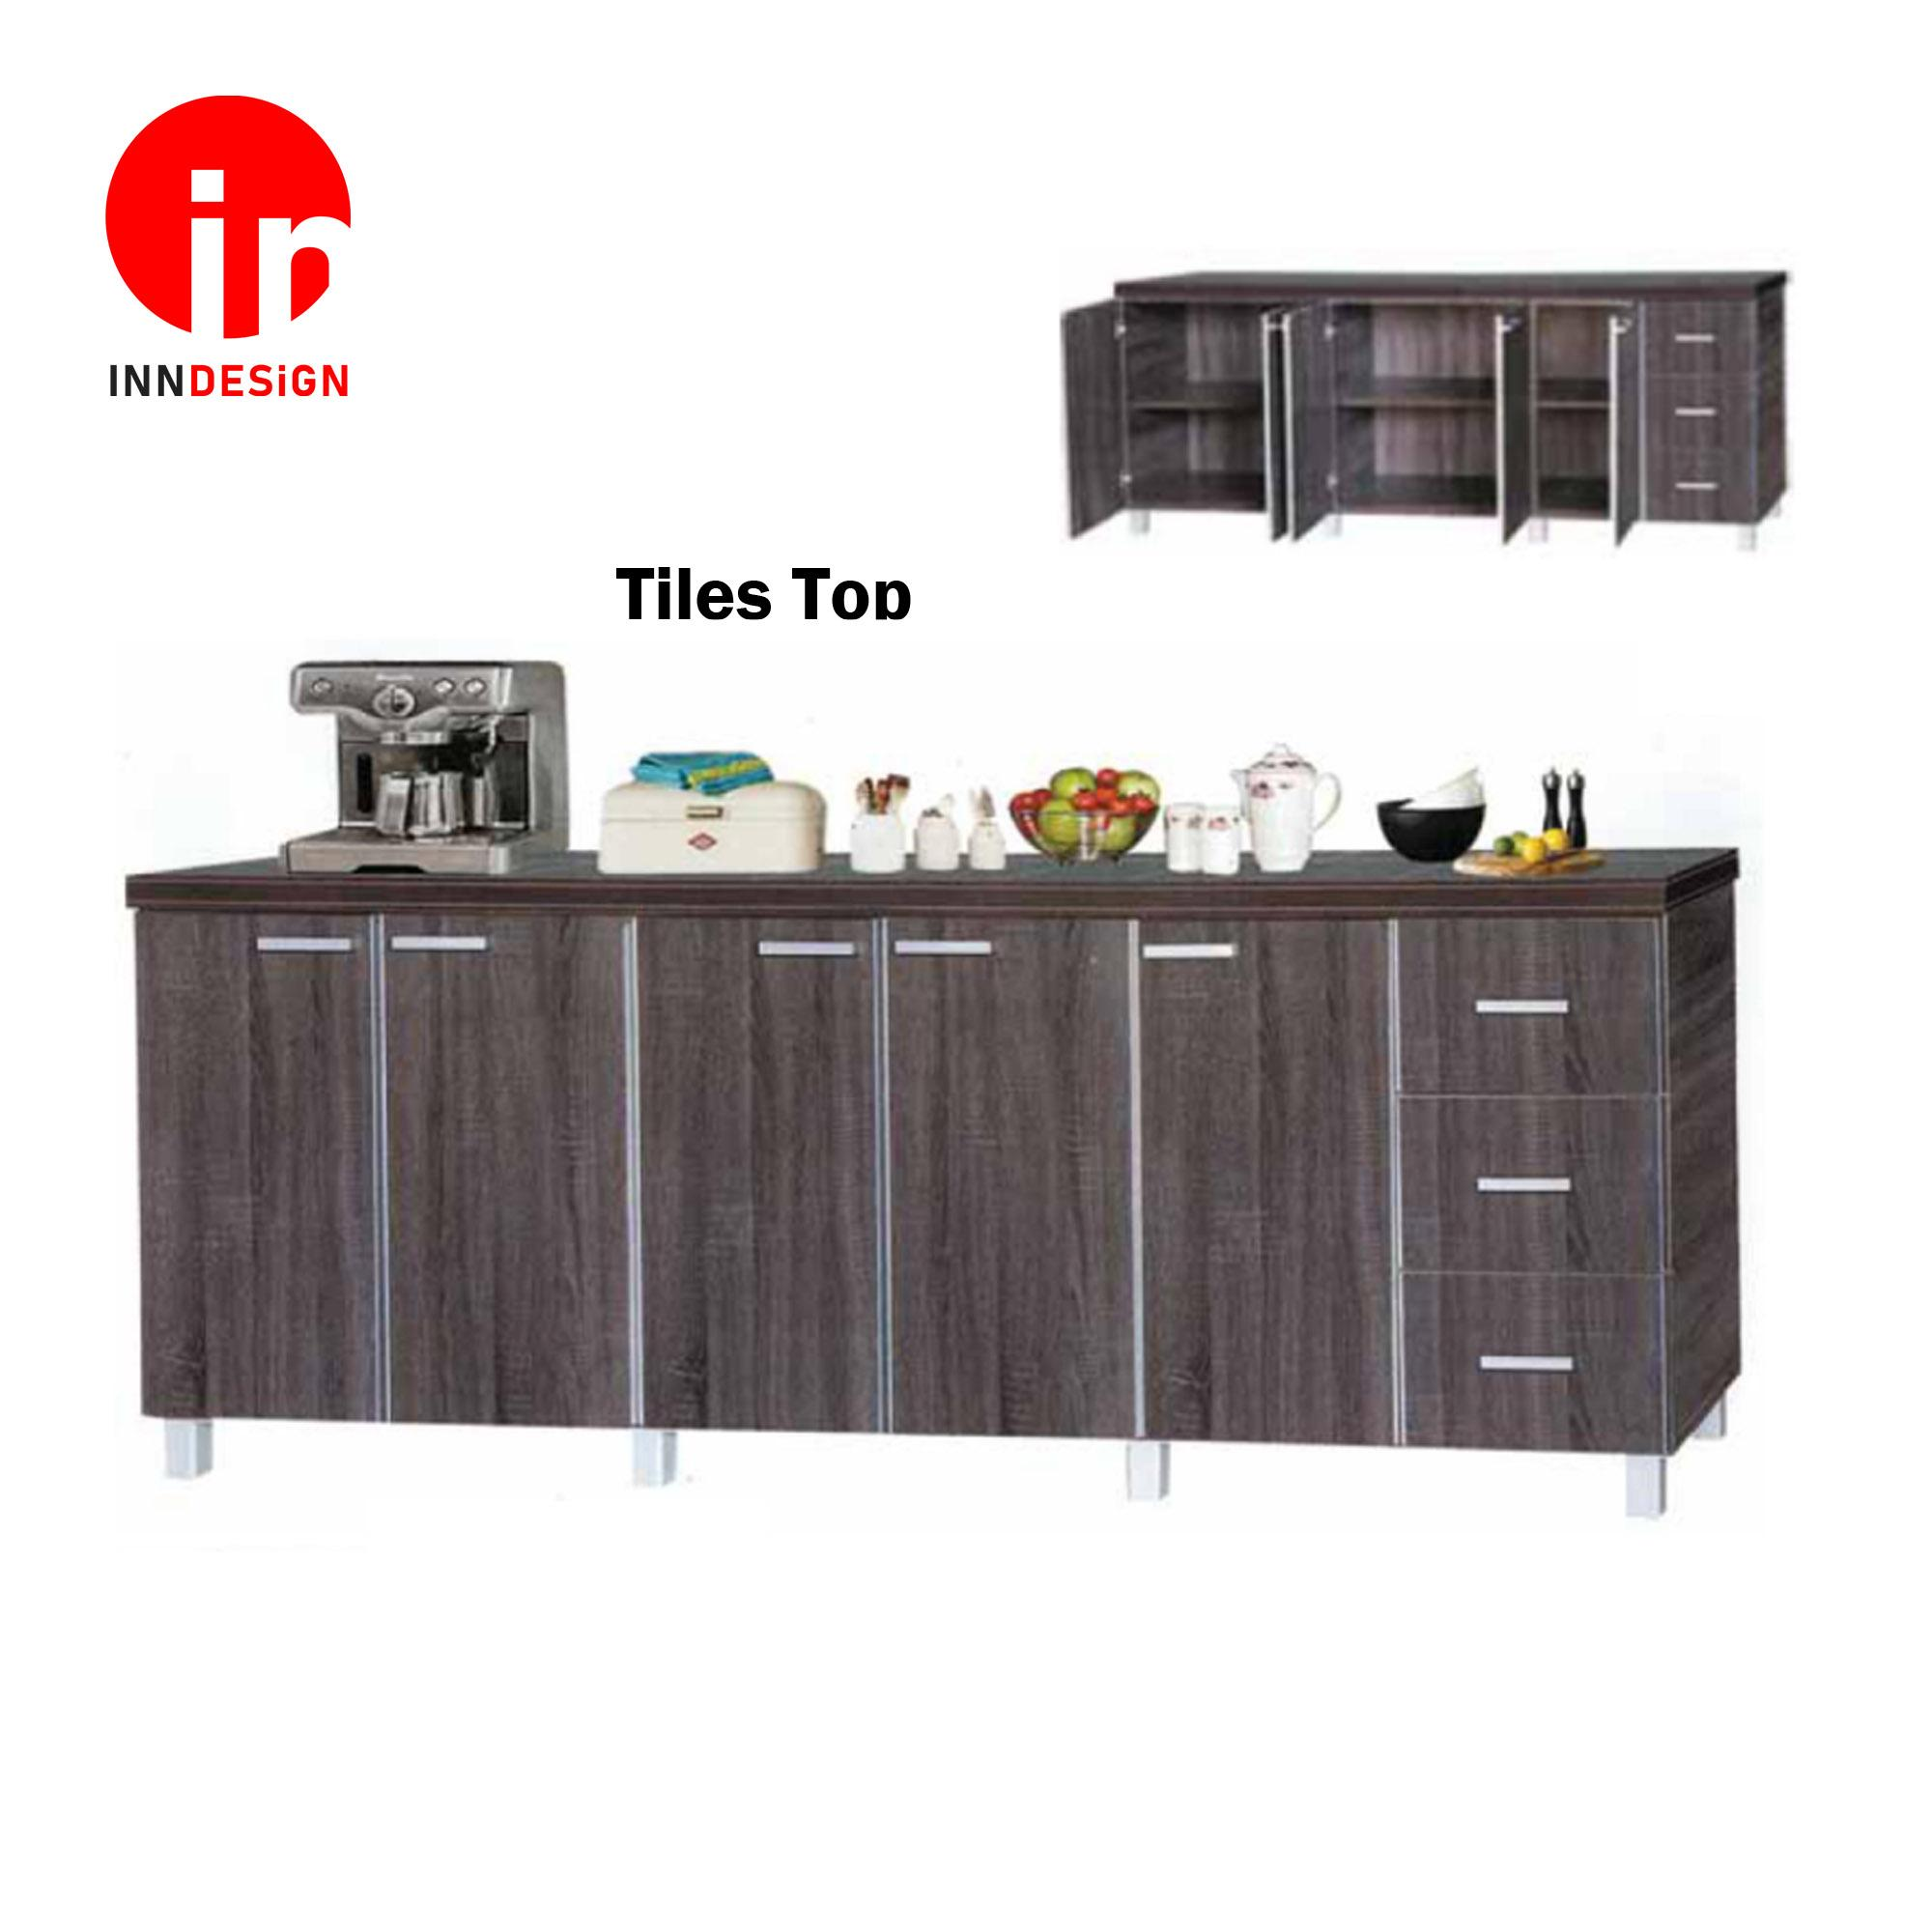 Cassiva 5 Doors With 3 Drawers Kitchen Cabinet (Ceramic Tiles Top)  (Free Delivery and Installation) (Dark Oak)